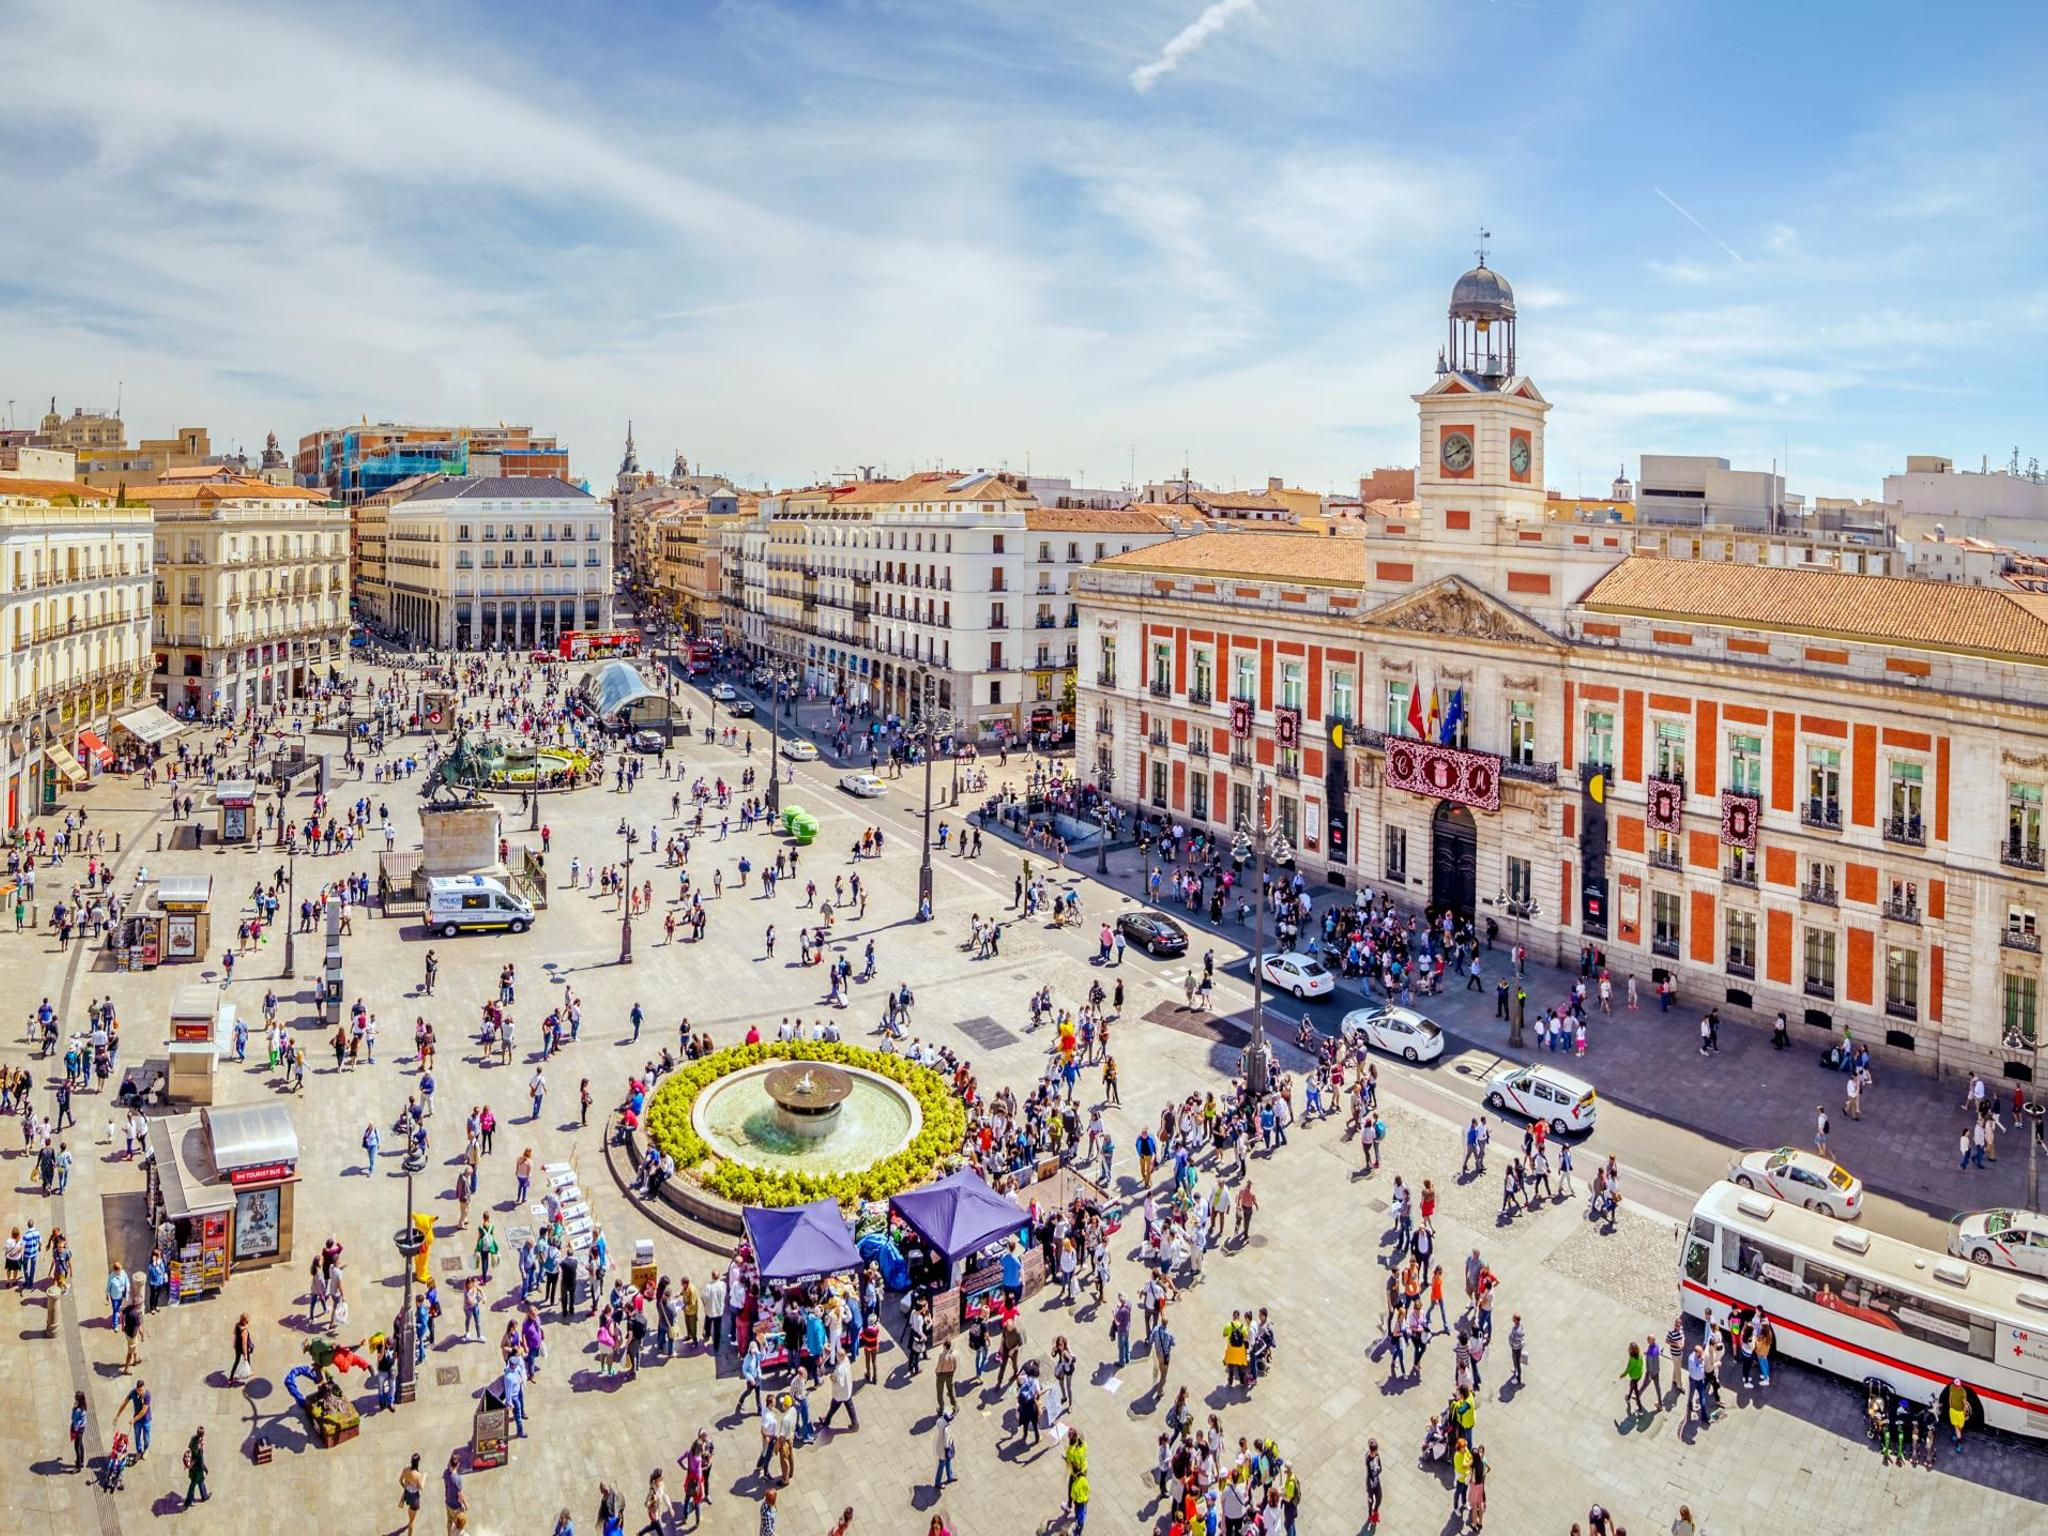 Where to stay near Madrid's Puerta del Sol | Booking.com